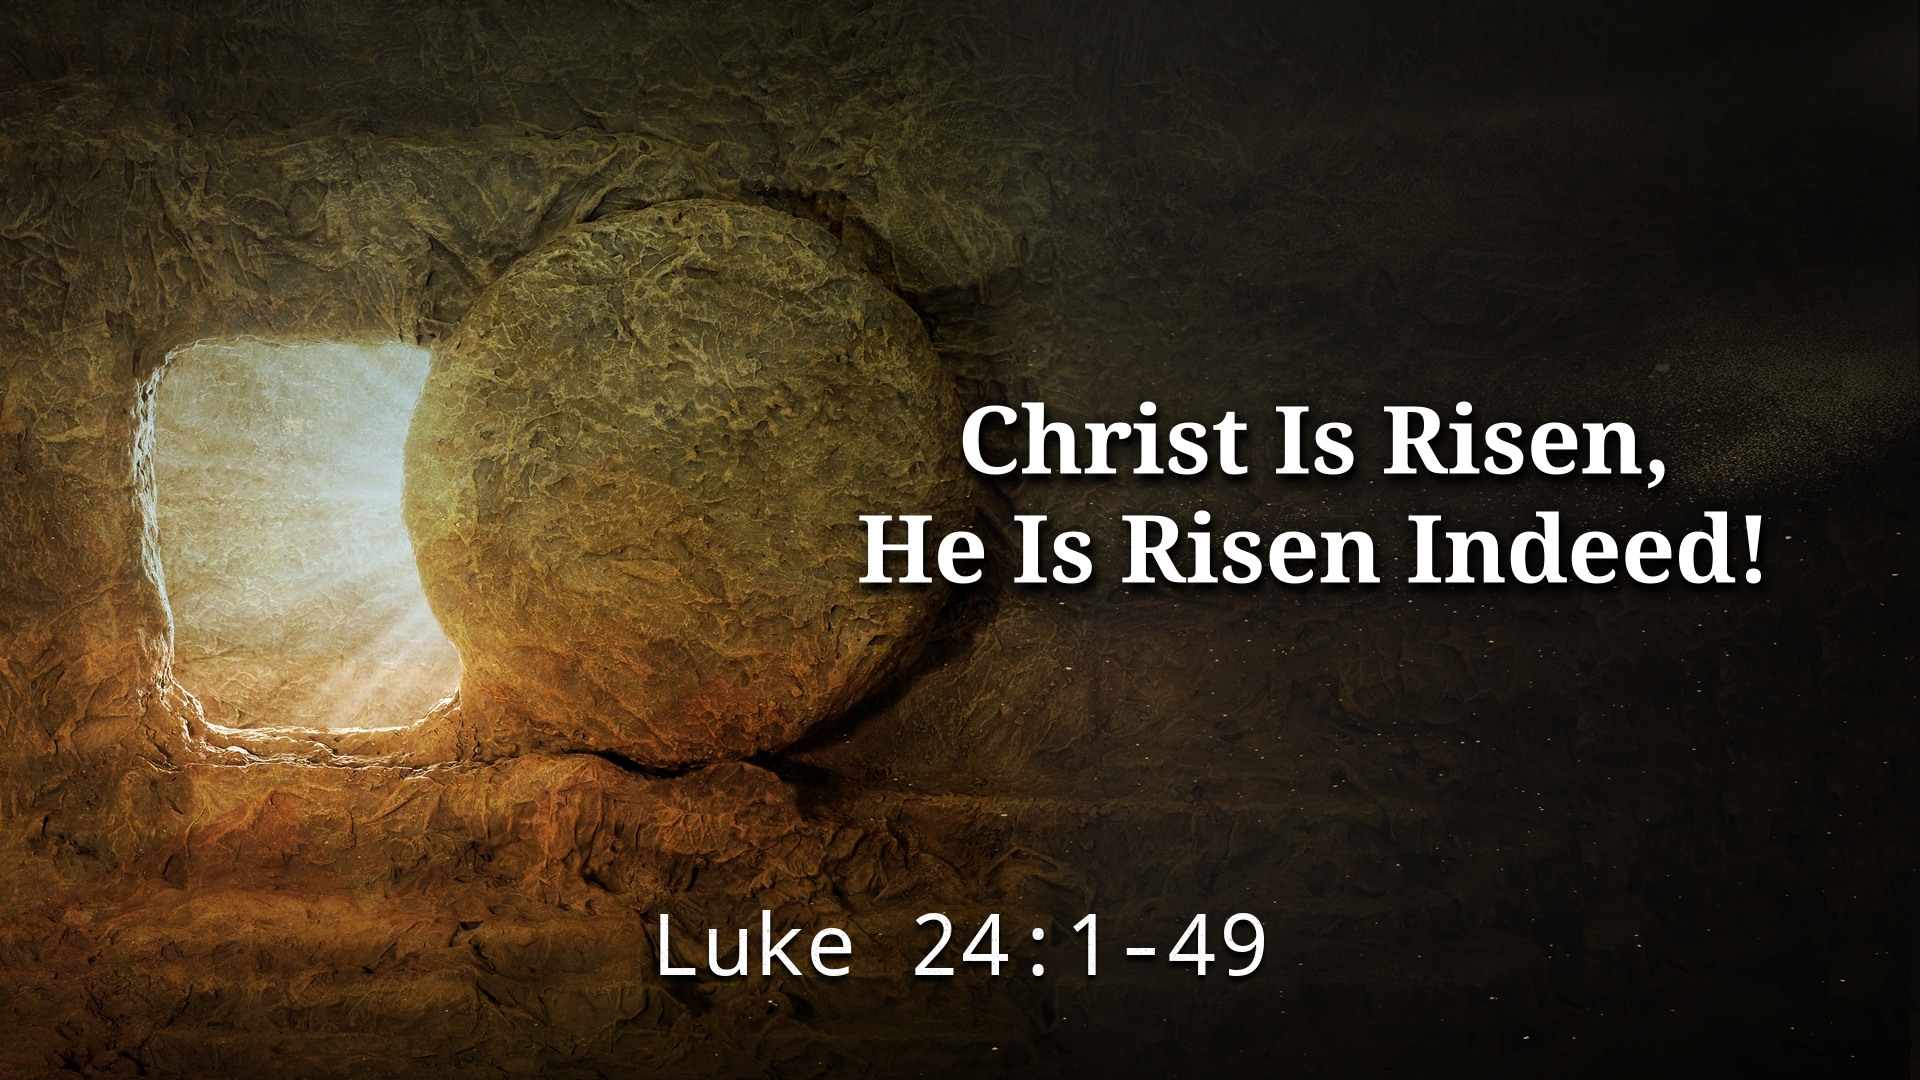 Image for the sermon Christ Is Risen, He Is Risen Indeed!